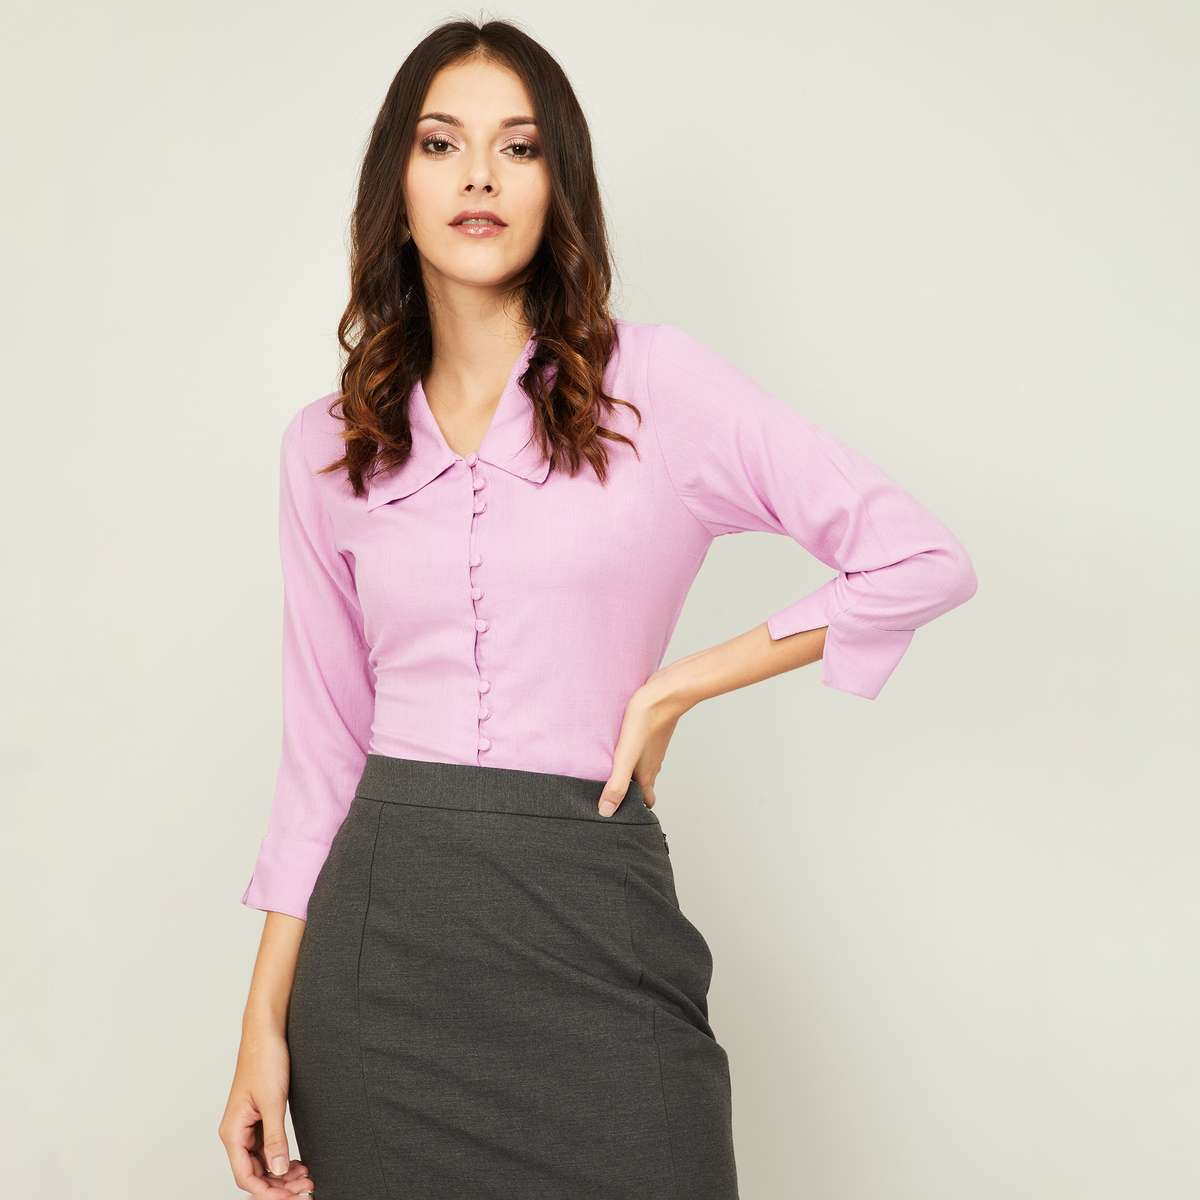 2.AND Women Solid Three-Quarter Sleeves Shirt